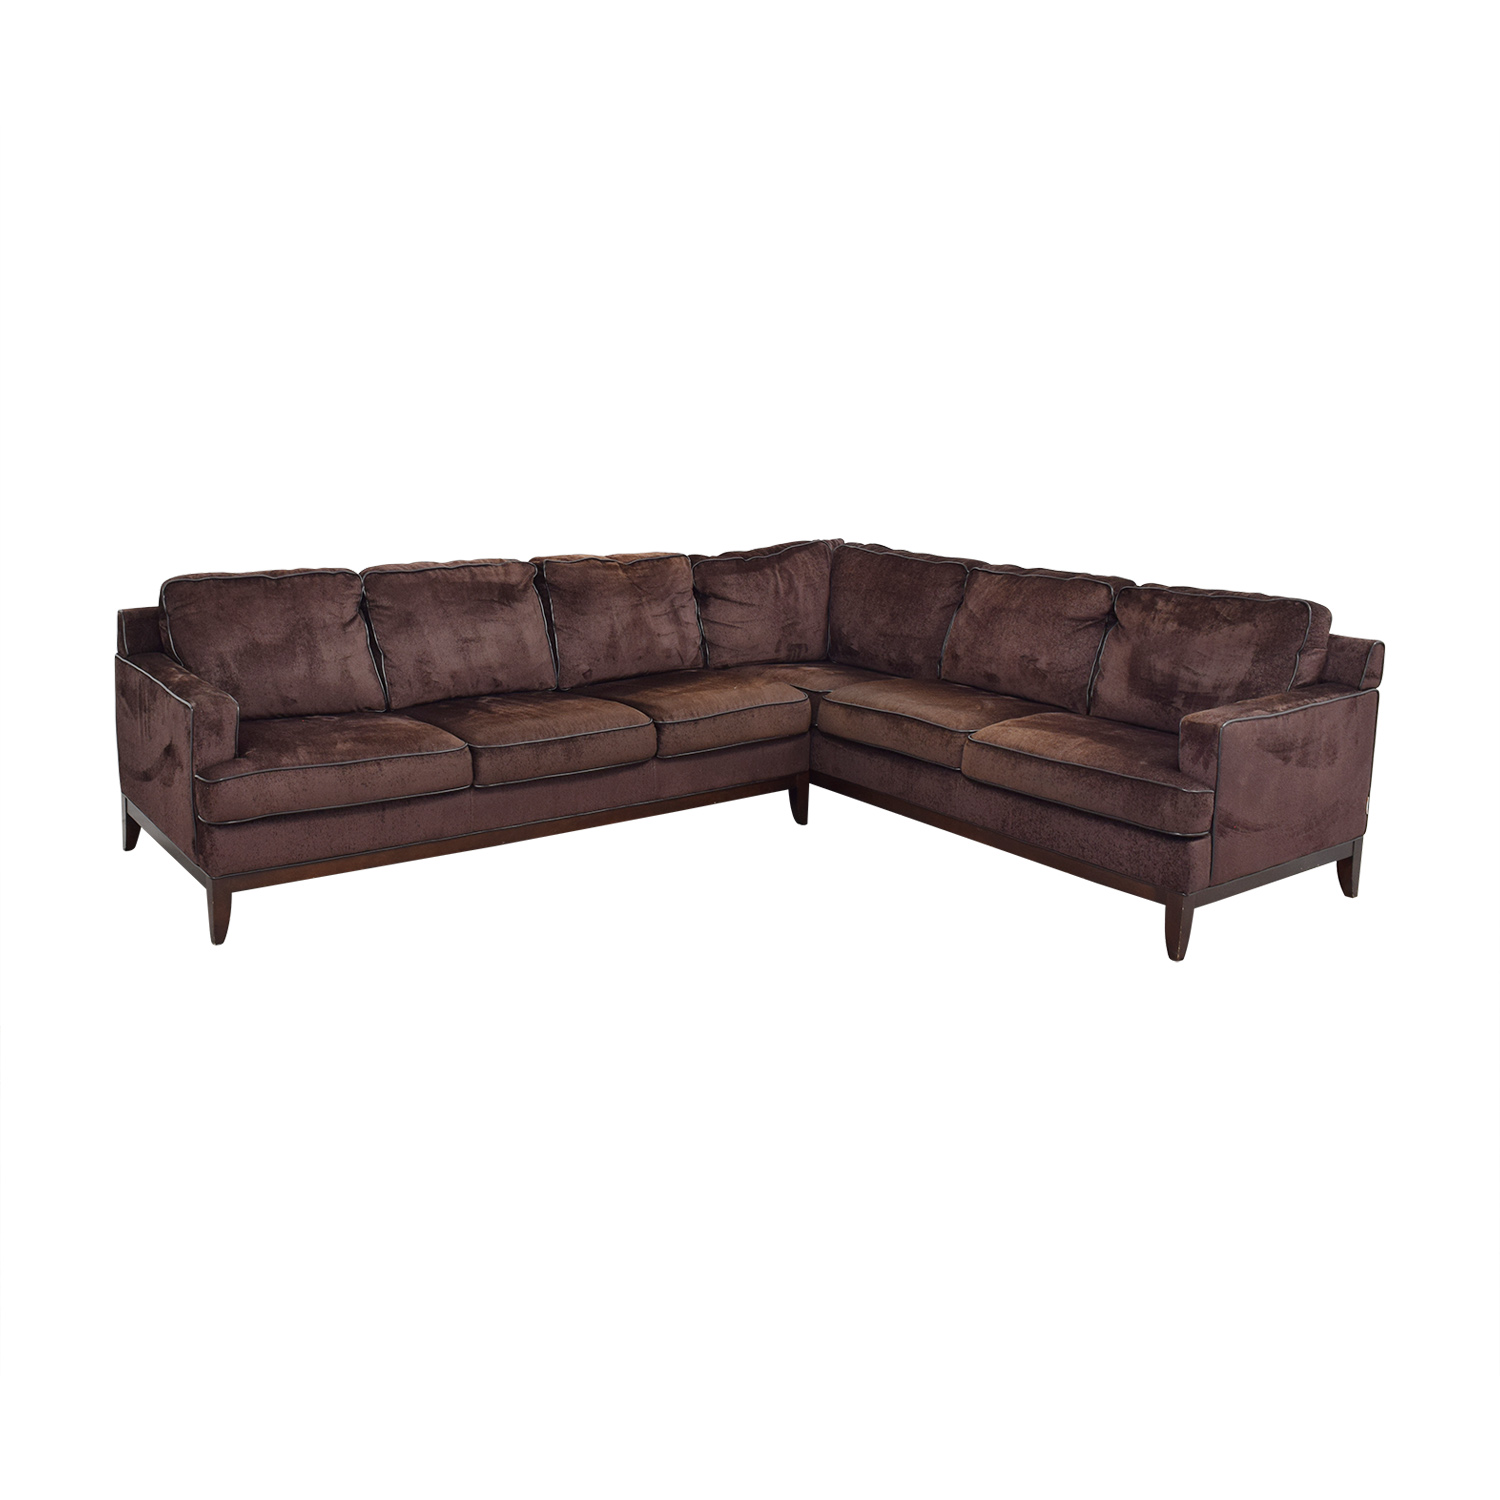 Simon Li Simon Li Sectional Sofa coupon